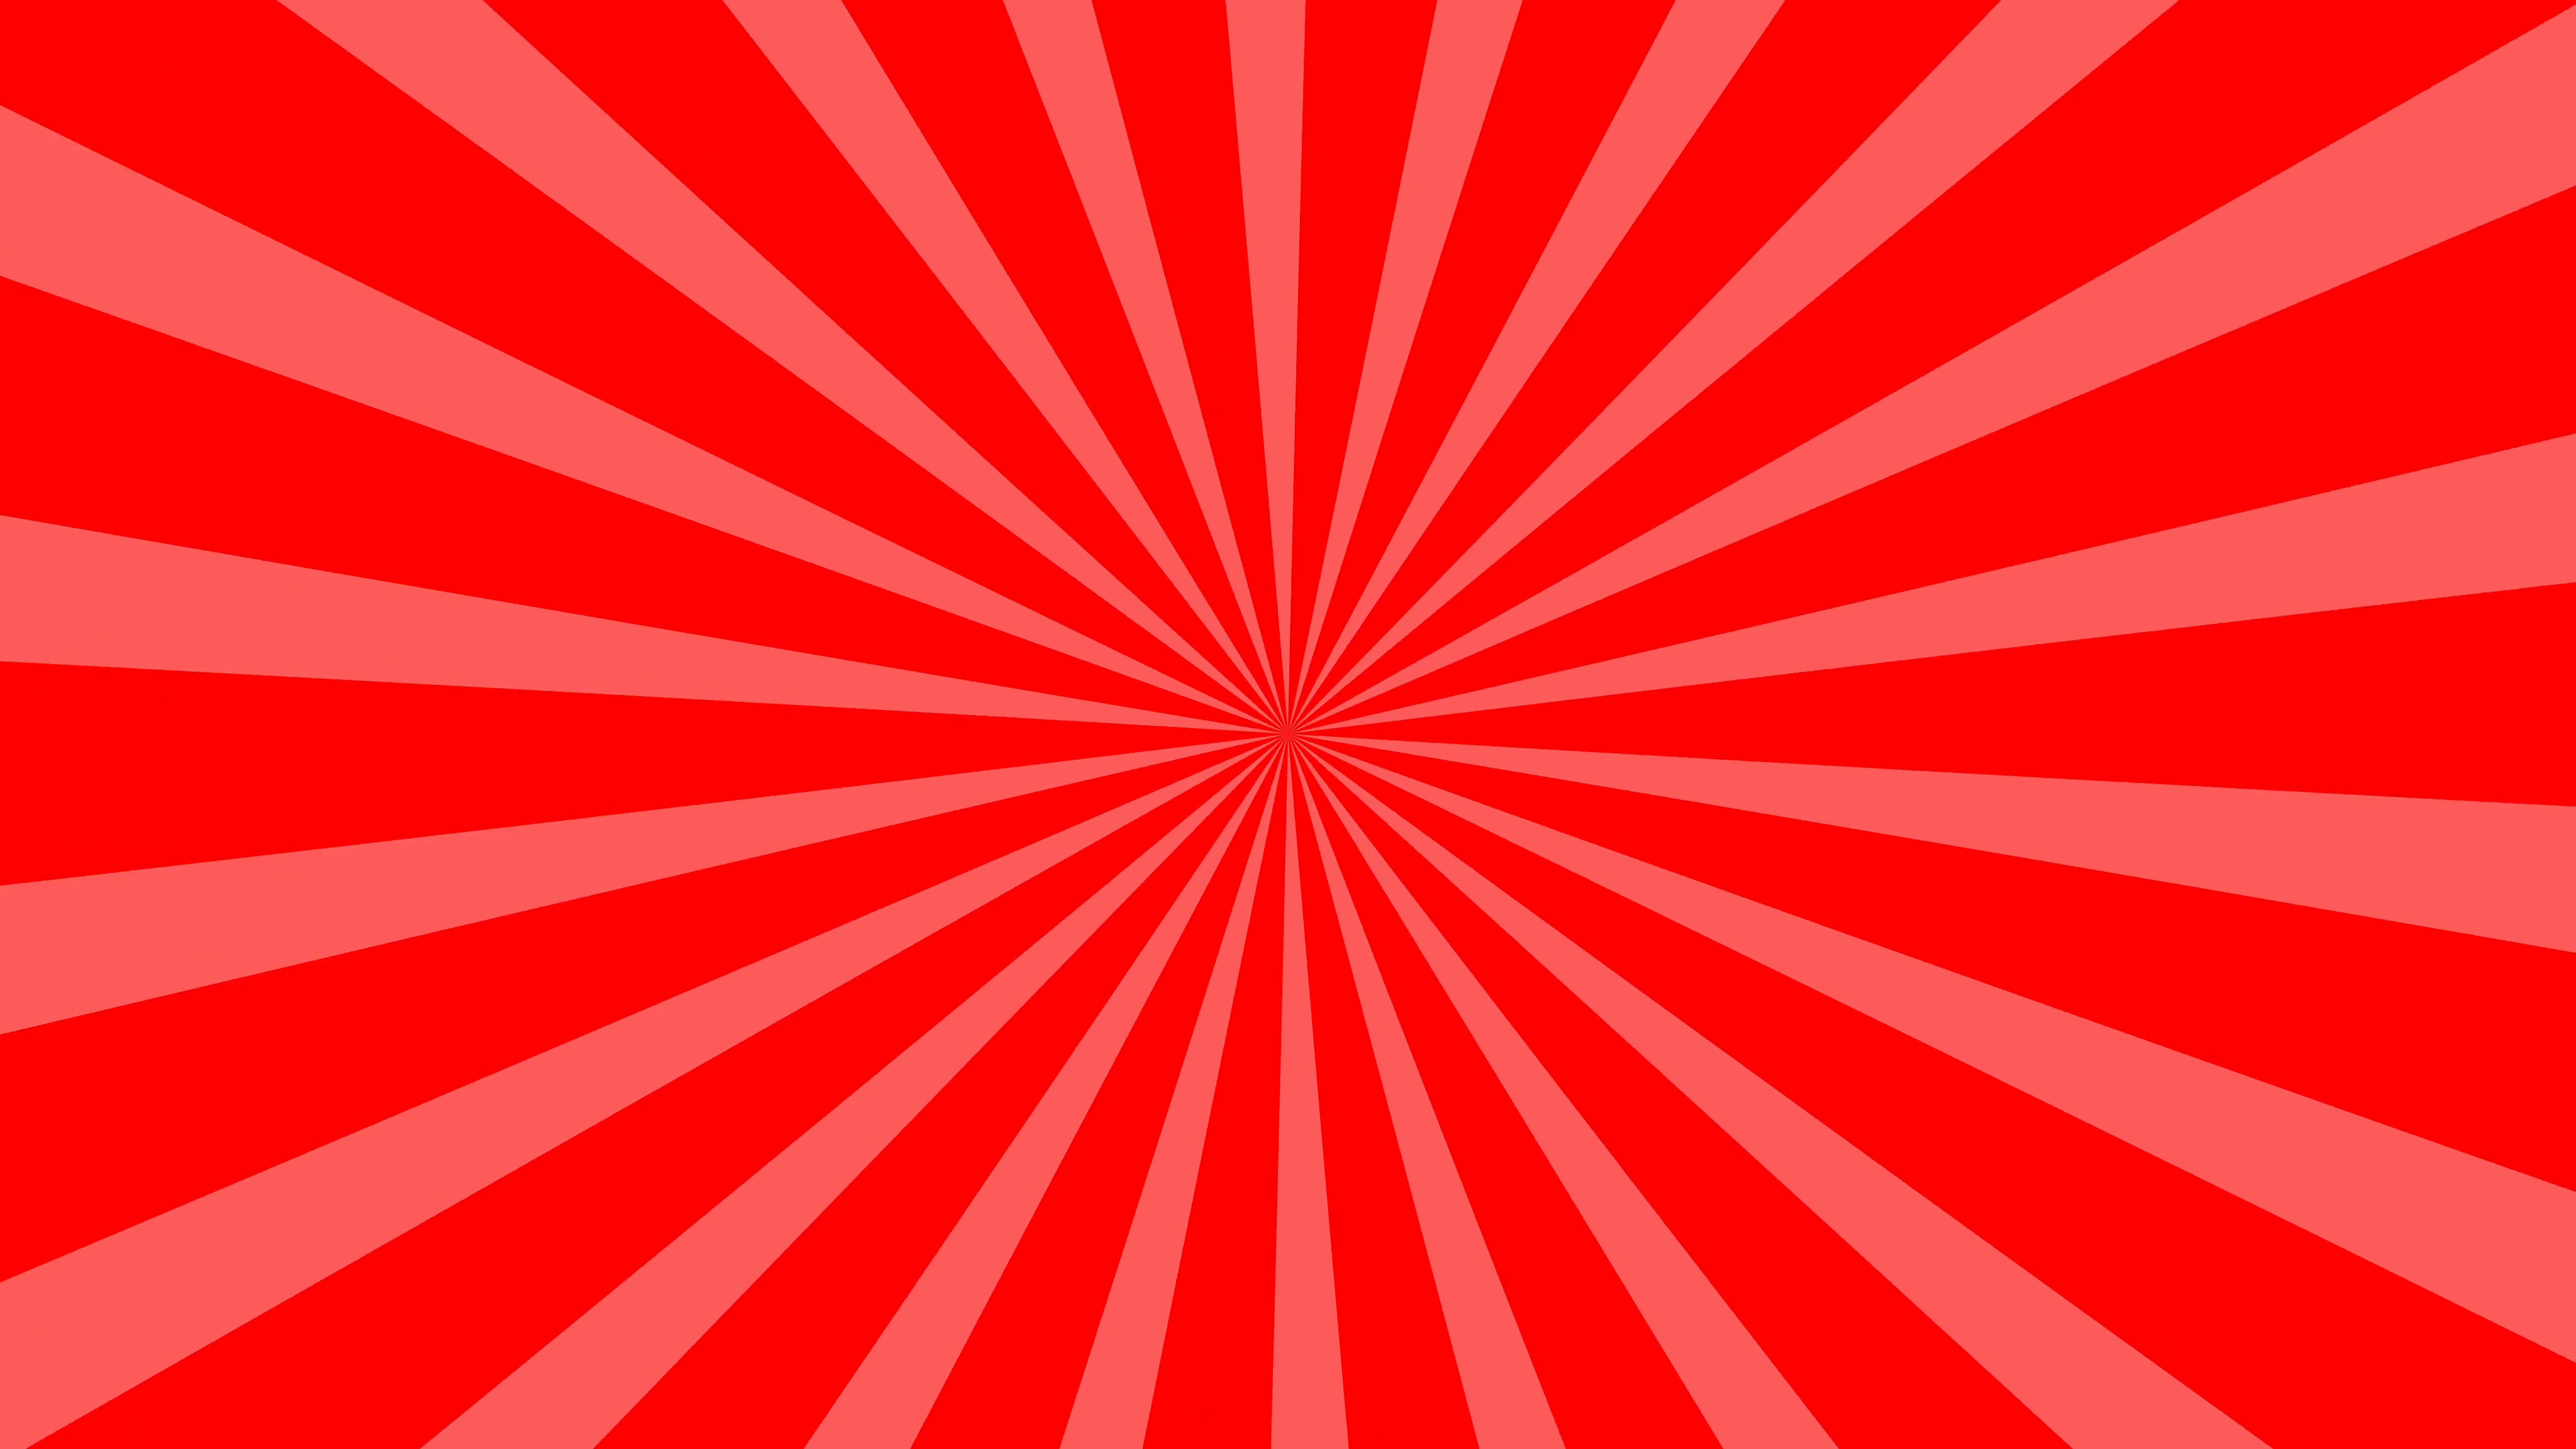 Starburst PNG HD Transparent Starburst HD.PNG Images..